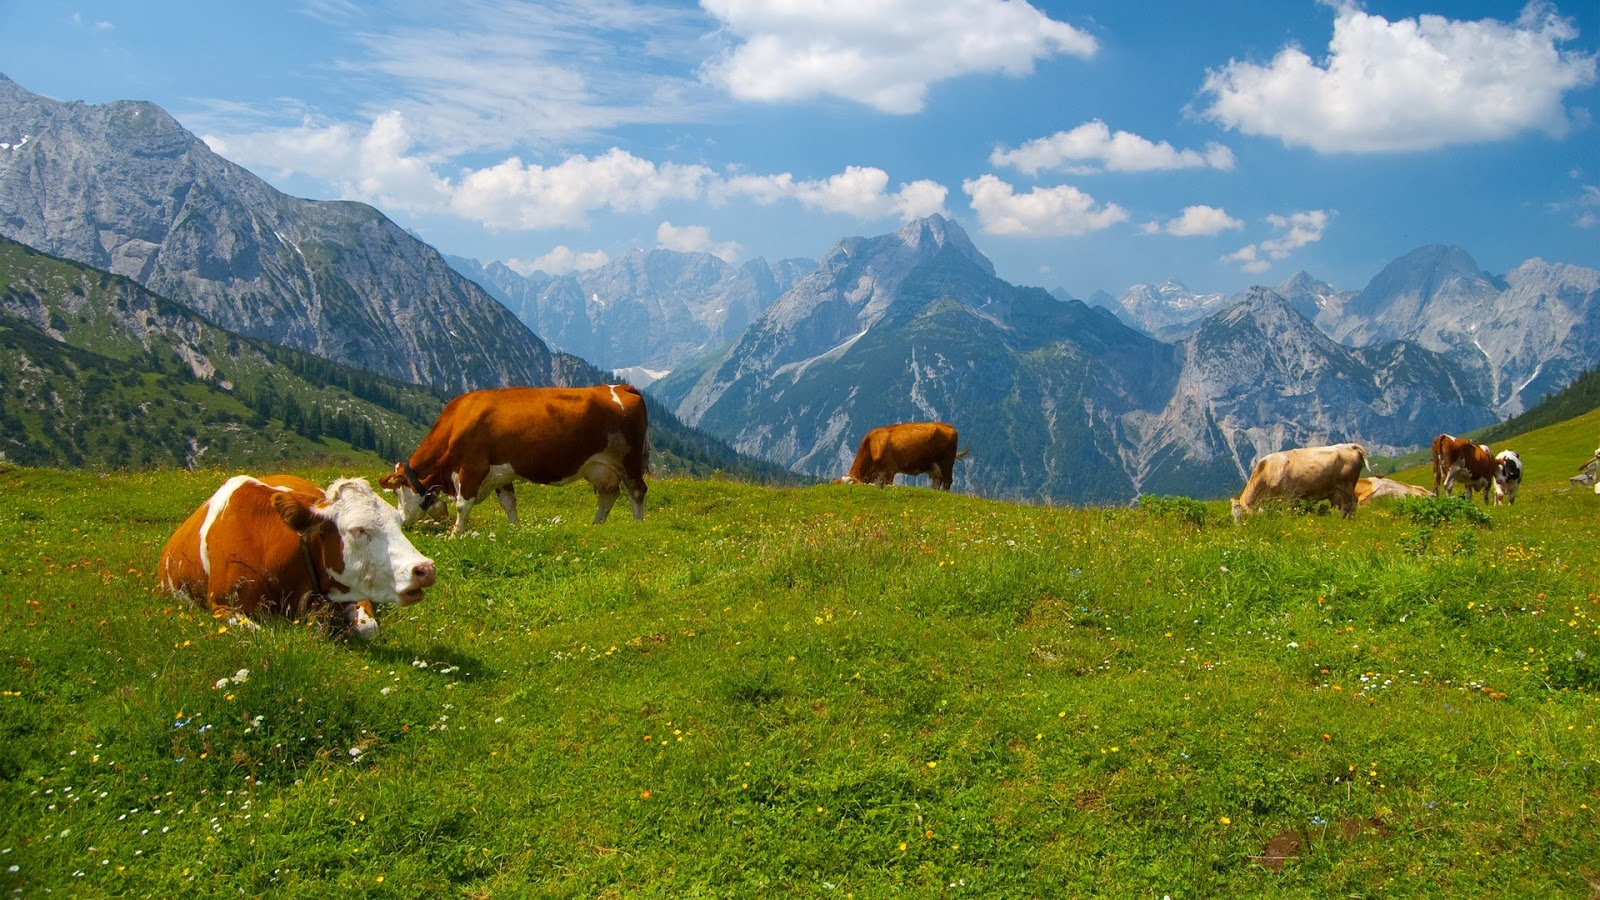 Cow HD Wallpapers